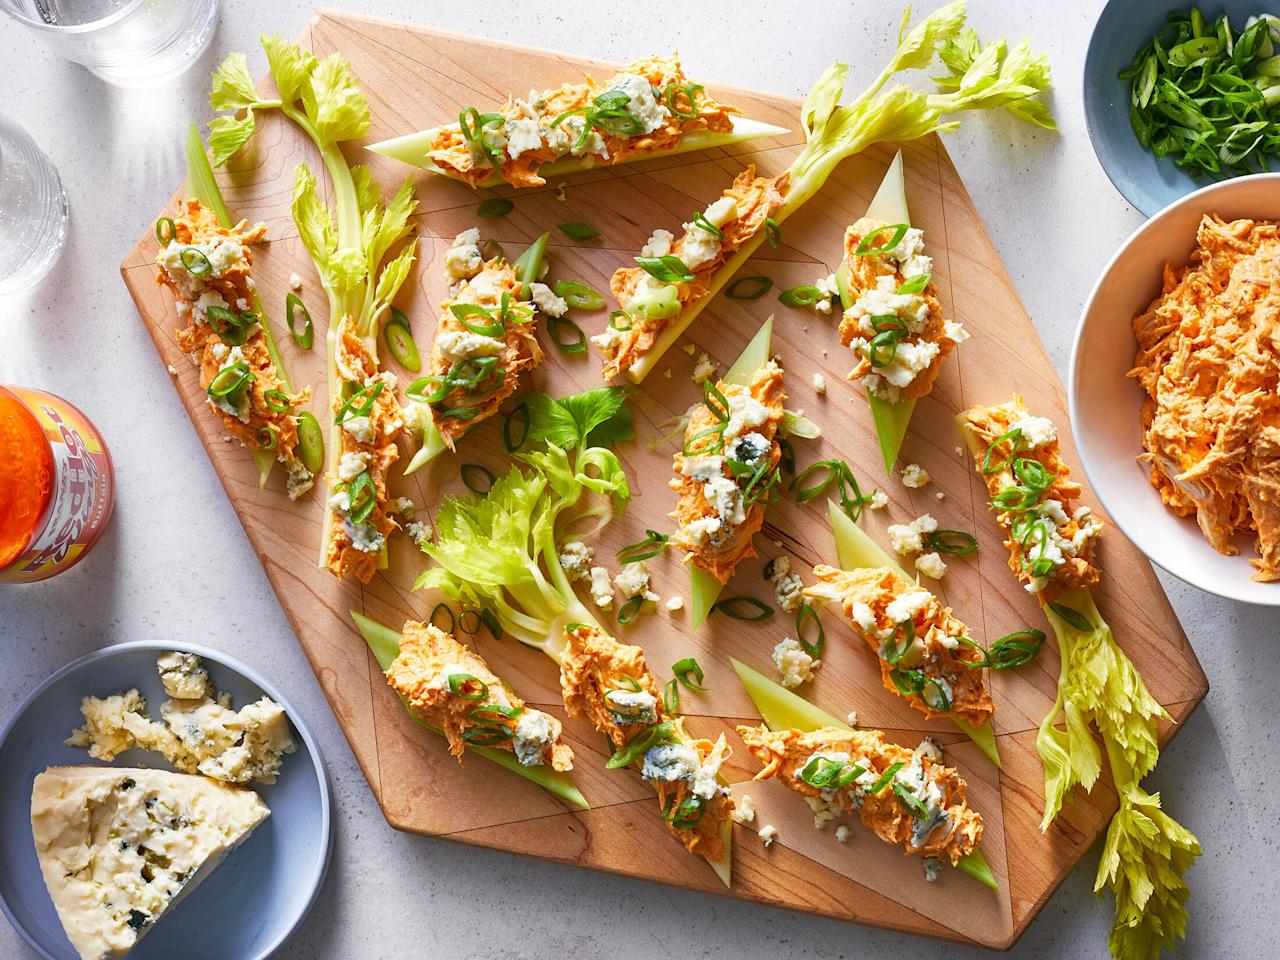 """<p>We can't decide what we love more about these Buffalo celery bites—the fact that they require zero cooking, come together in about 15 minutes, and are roughly the easiest appetizer ever OR the sheer magnitude of how delicious they are. But then, that's the beauty of these seriously upgraded stuffed celery sticks, you don't have to choose between convenience and full-on flavor. Crisp celery sticks are loaded with a creamy Buffalo chicken mixture—made entirely from store-bought staples—and topped off with crumbled blue cheese, making every bite the perfect Buffalo bite. Perfect for game day, these got-it-all snacks are sure to score more than a few devoted fans. </p> <p><a href=""""https://www.myrecipes.com/recipe/buffalo-chicken-stuffed-celery"""">Buffalo Chicken Stuffed Celery Recipe</a></p>"""